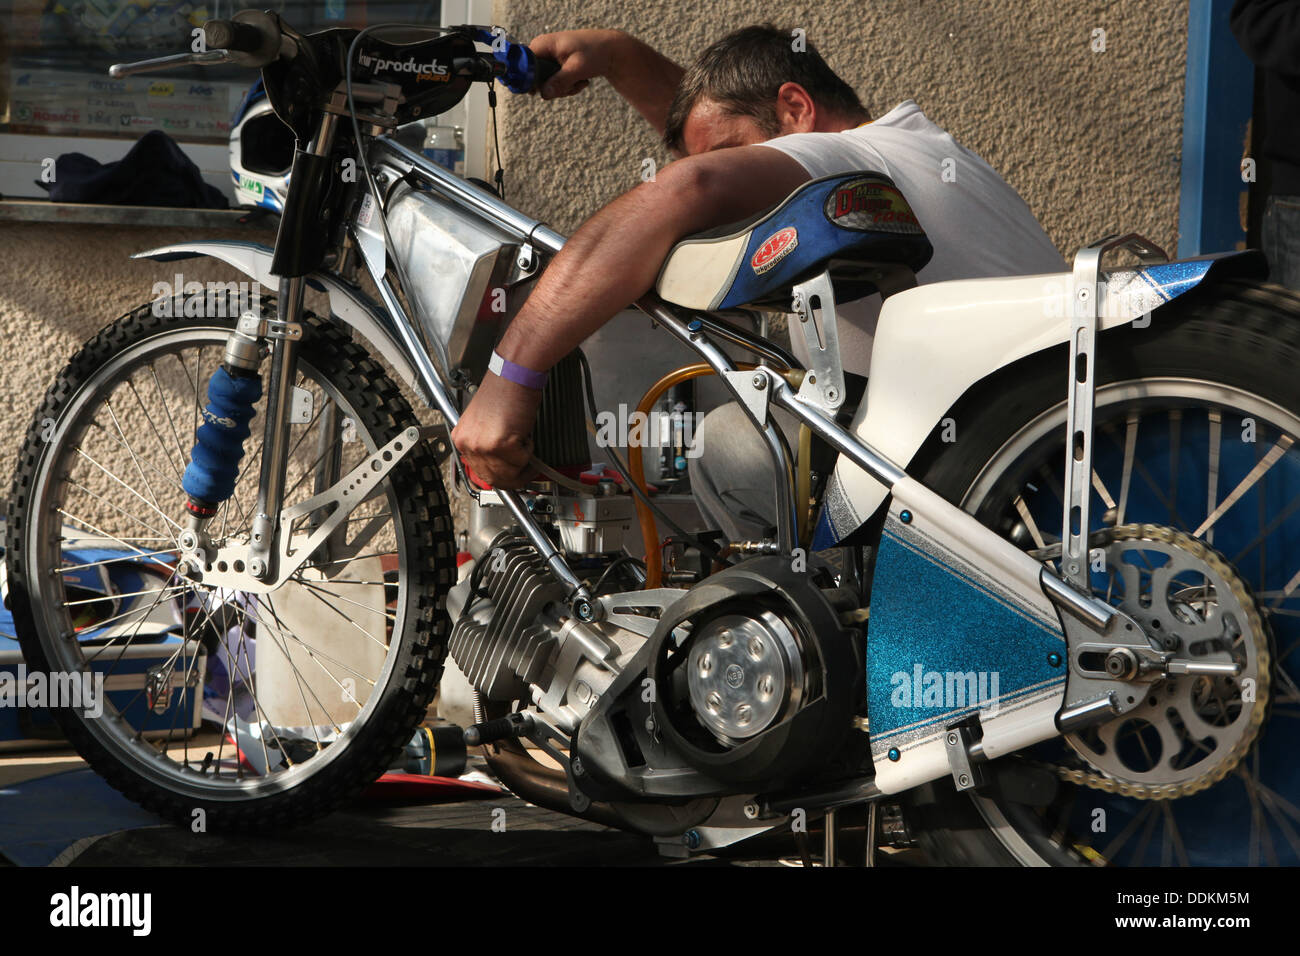 Speedway competition the Golden Helmet Prix in Pardubice, Czech Republic. - Stock Image